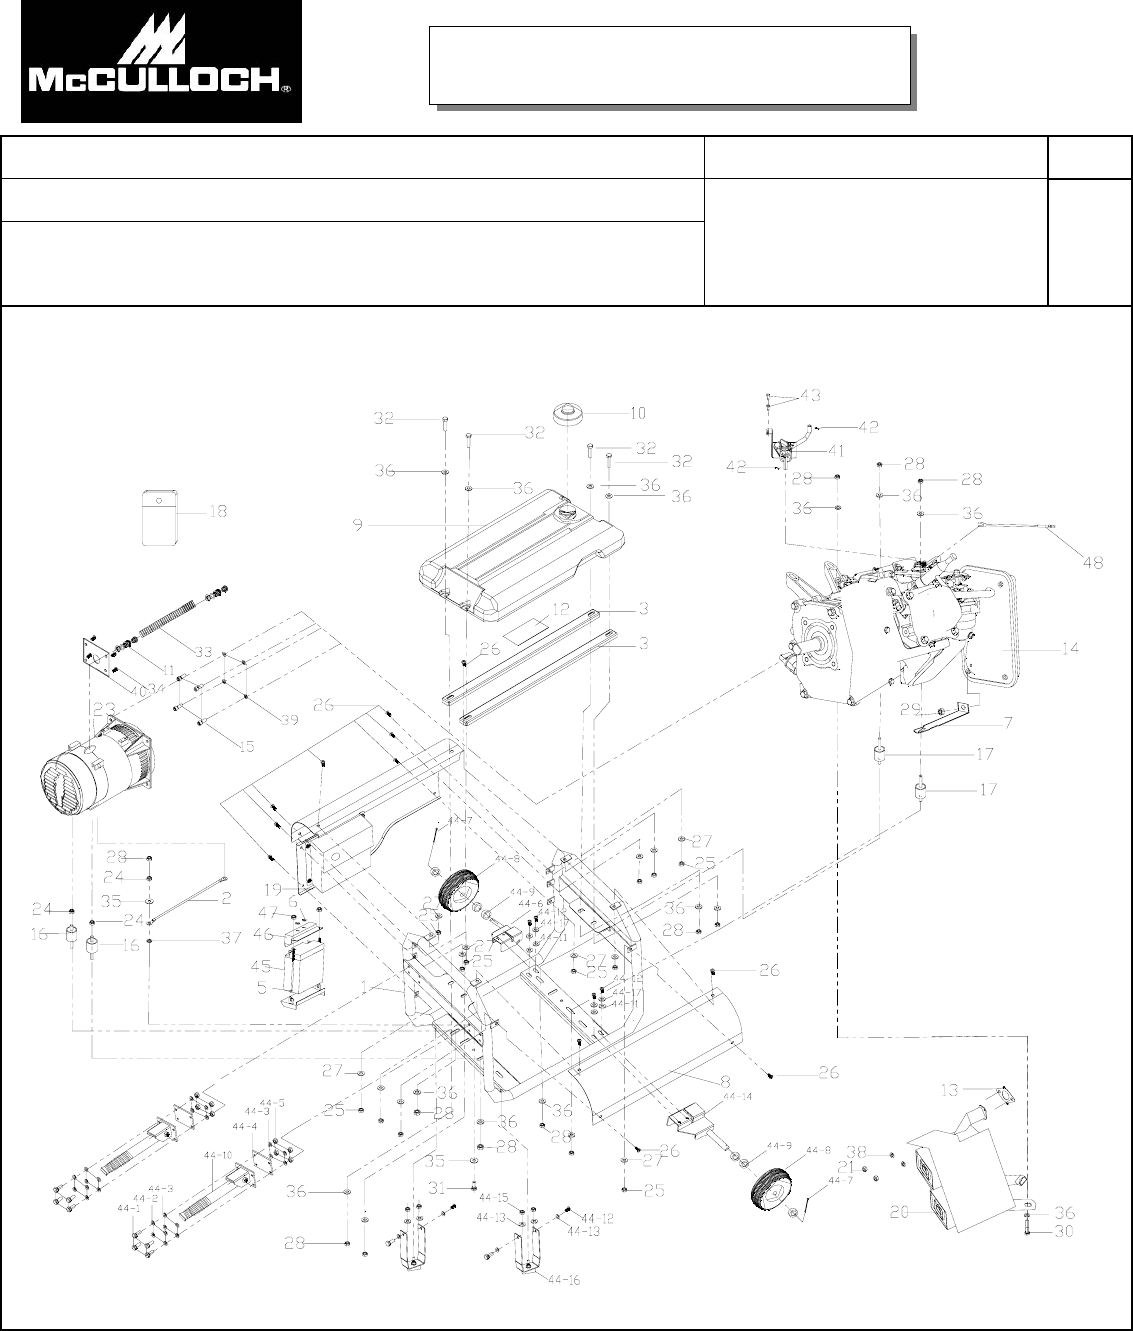 Parts Manual For Mcculloch Generator Chainsaw Engine Diagrams Page 5